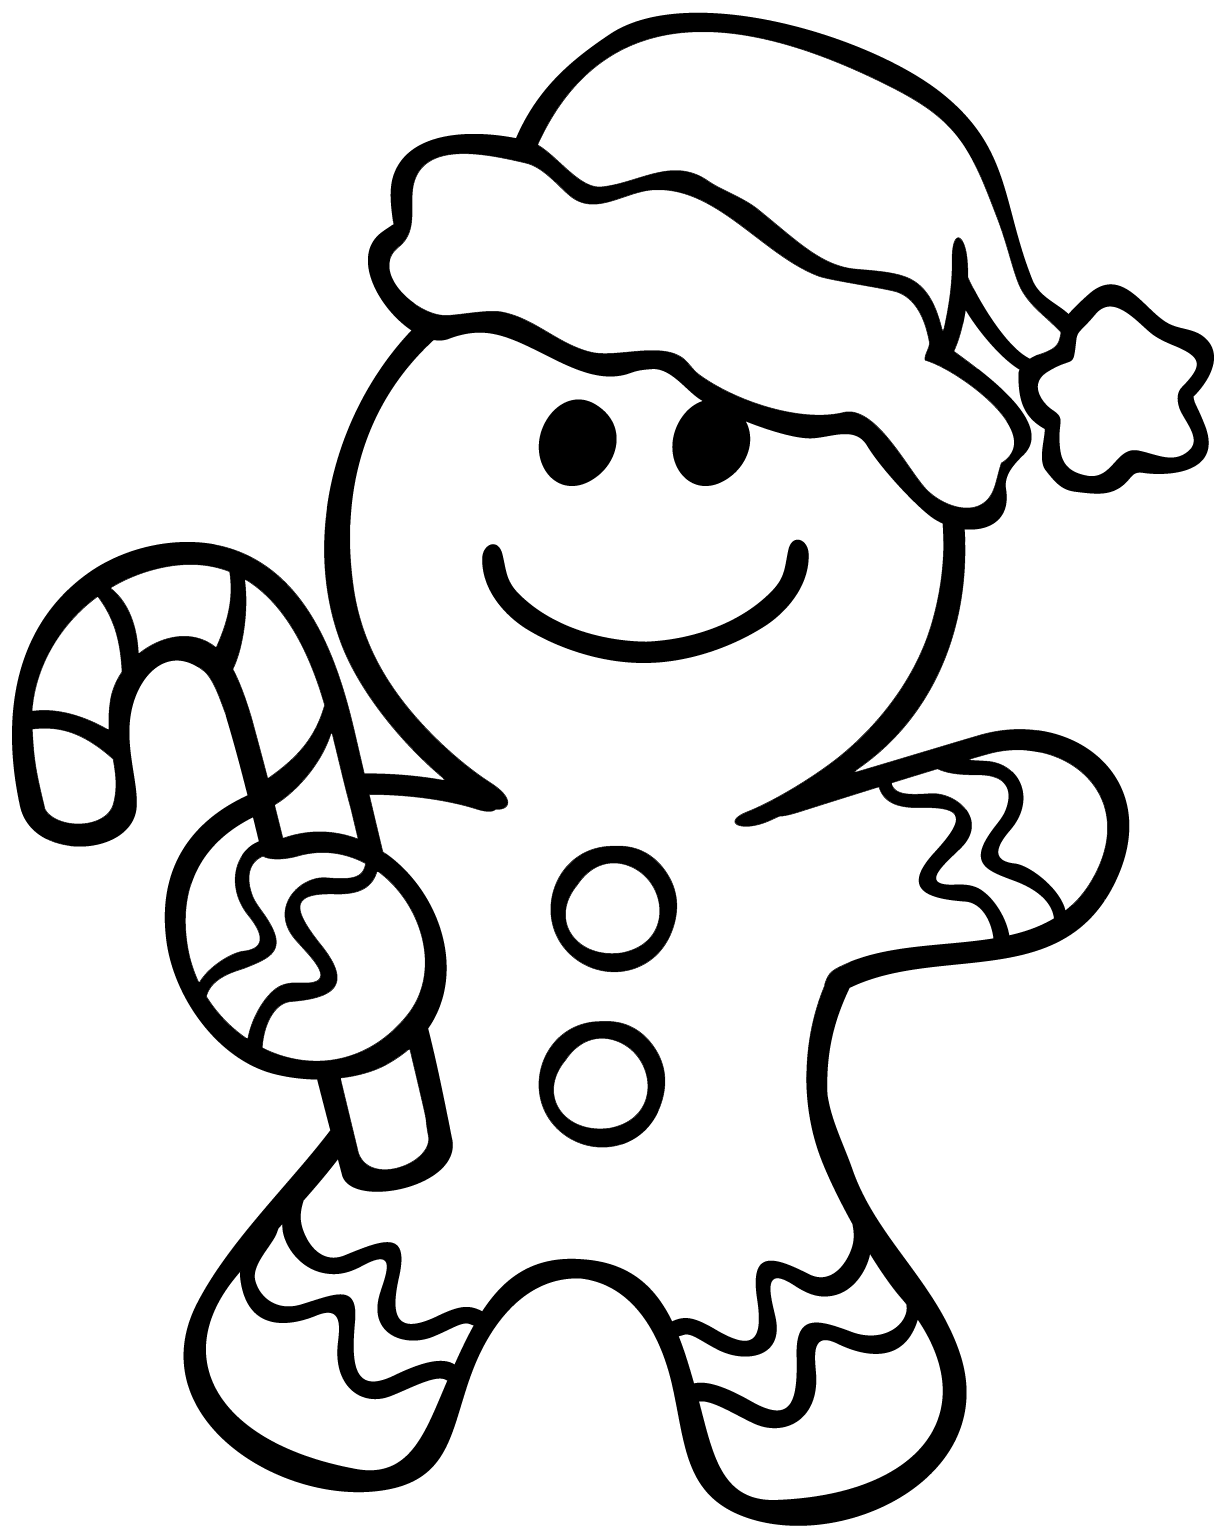 gingerbread coloring pages printable gingerbread house coloring pages for kids gingerbread coloring pages